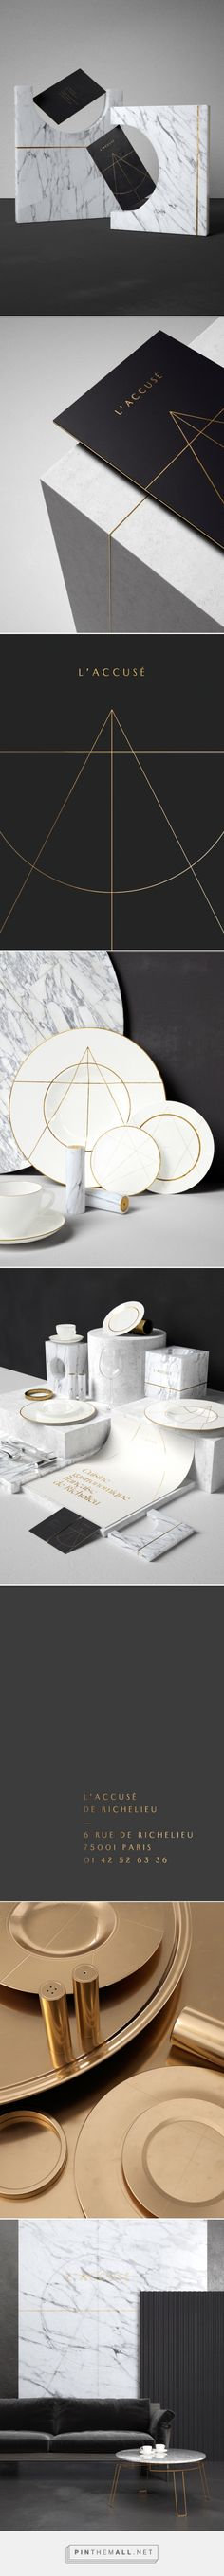 L'Accusé on Behance... - a grouped images picture - Pin Them All